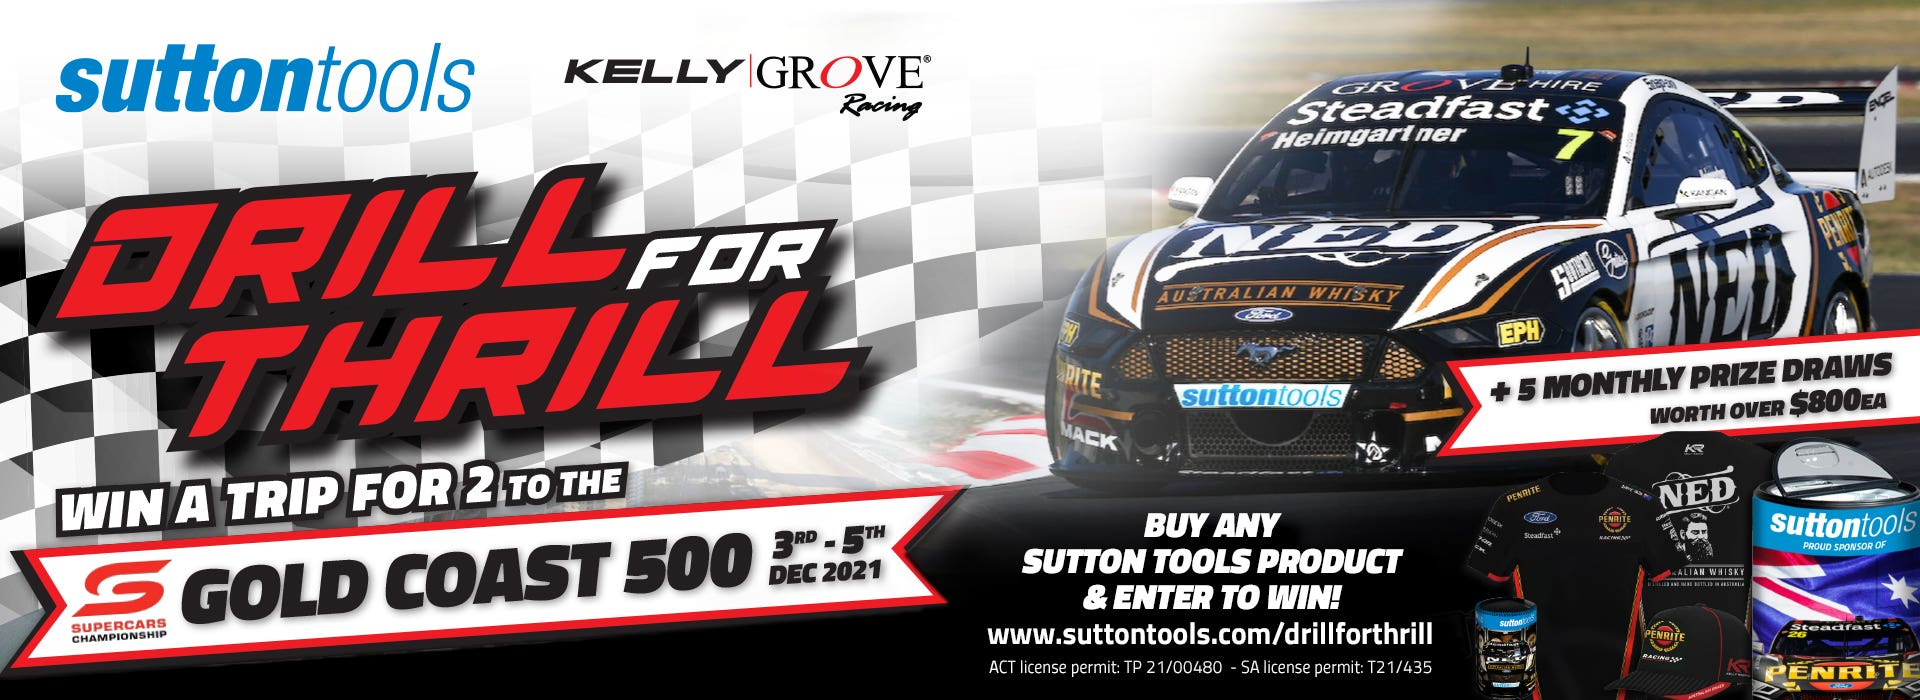 Sutton Tools Drill for Thrill - D